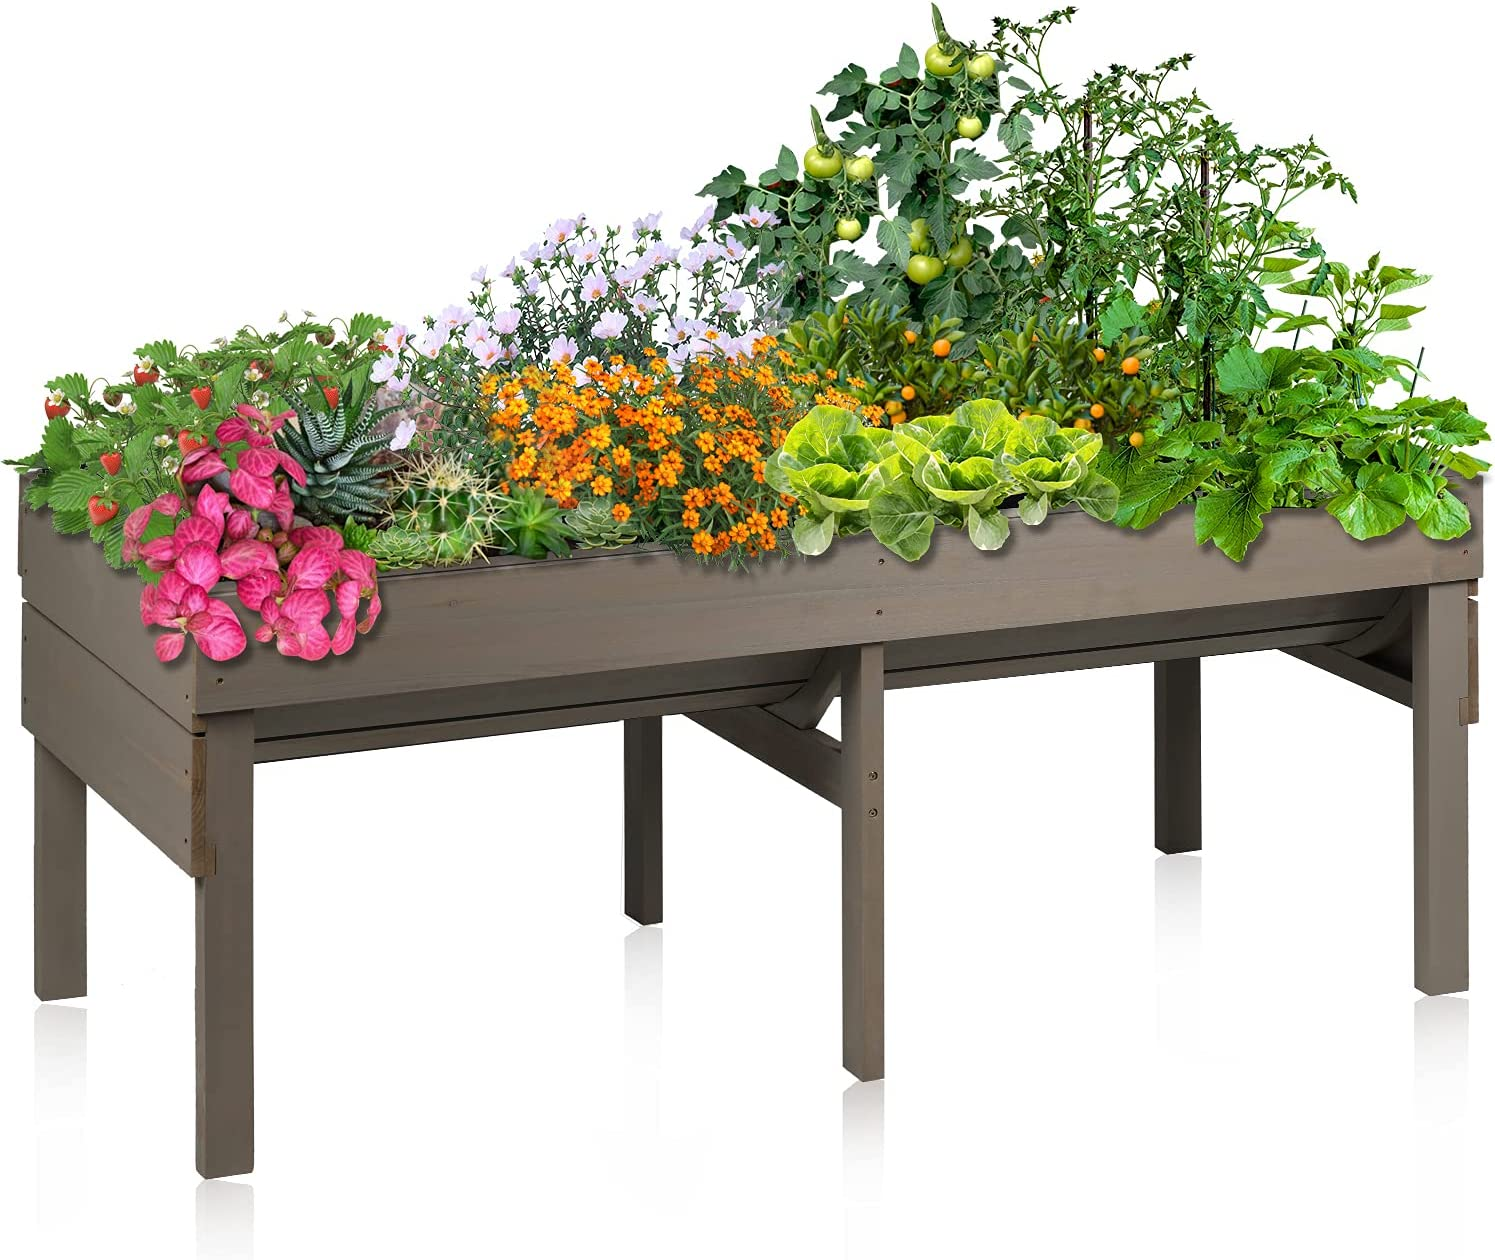 Aoodor Wooden Raised Garden Bed Elevated Be super welcome Cash special price for Vegetab Box Planter